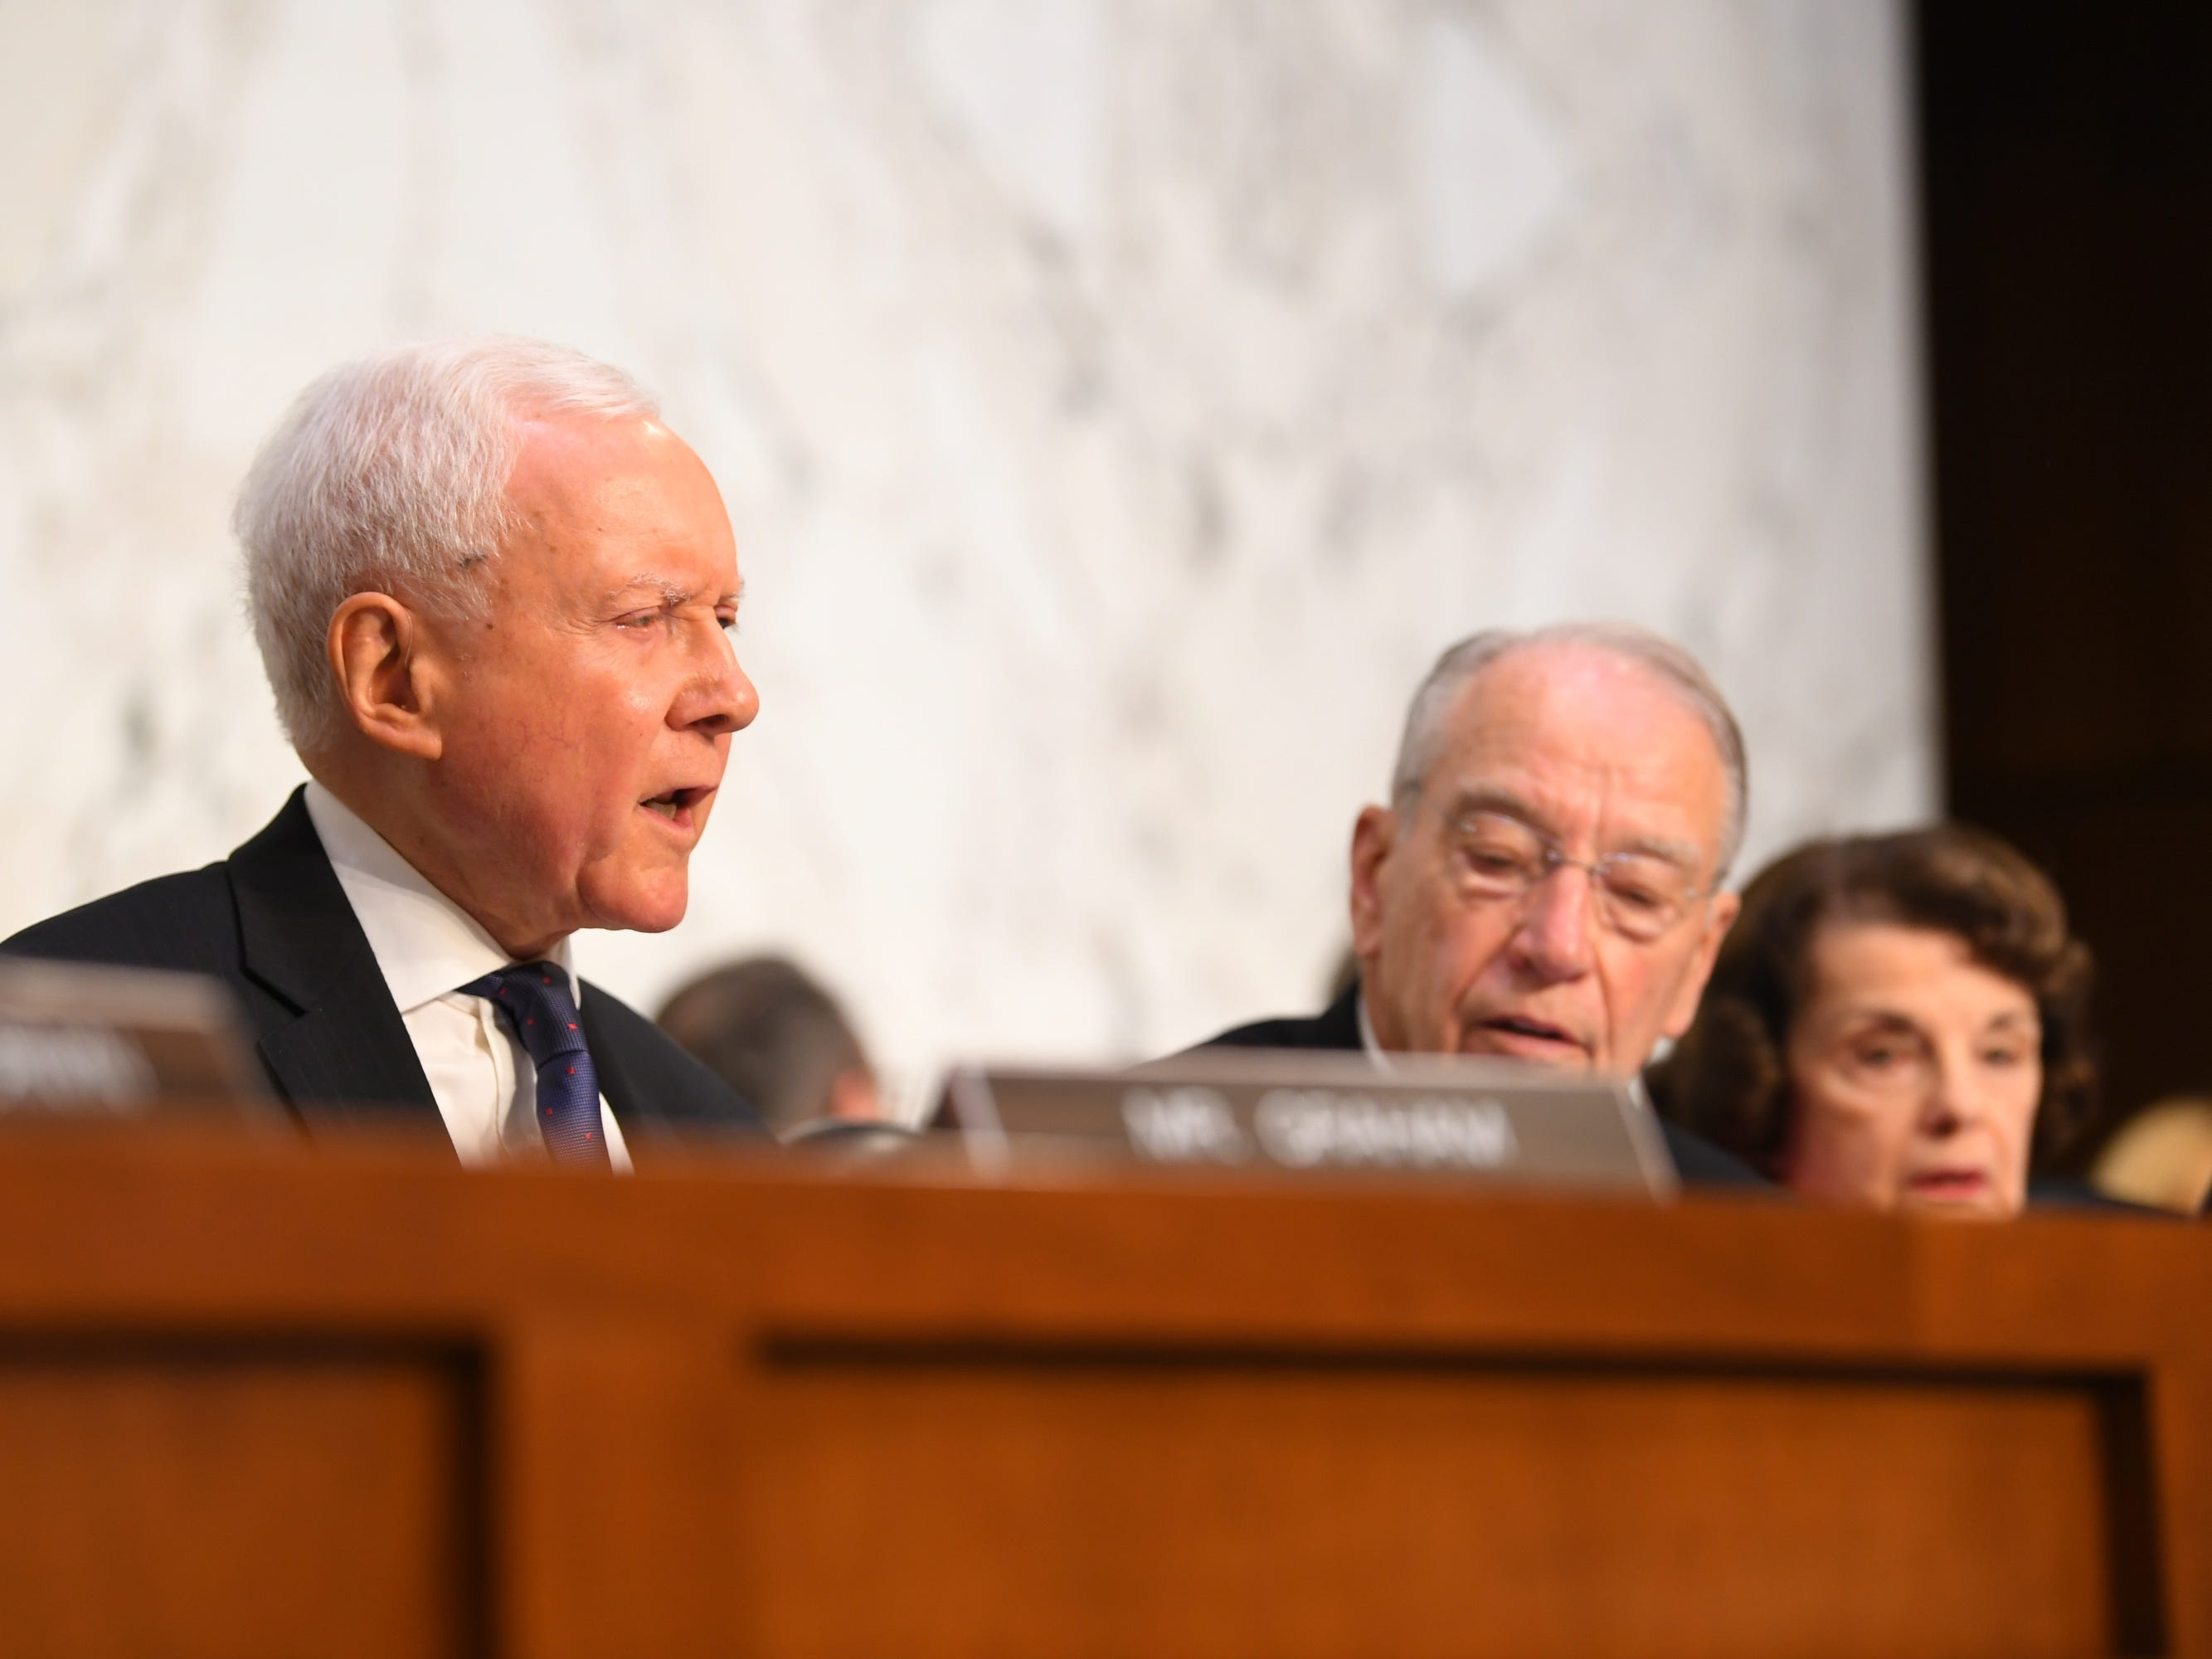 9/4/18 11:12:51 AM -- Washington, DC, U.S.A  --  Sen. Orrin Hatch (R-Utah) speaks during the hearing for Supreme Court Associate Justice nominee Brett Kavanaugh on Sept. 4, 2018 in Washington. Kavanaugh was nominated by President Donald Trump to replace Justice Anthony Kennedy, who retired from the Supreme Court in July.  --    Photo by Jack Gruber, USA TODAY Staff ORG XMIT:  JG 137433 Kavanaugh Confir 9/4/2018 (Via OlyDrop)